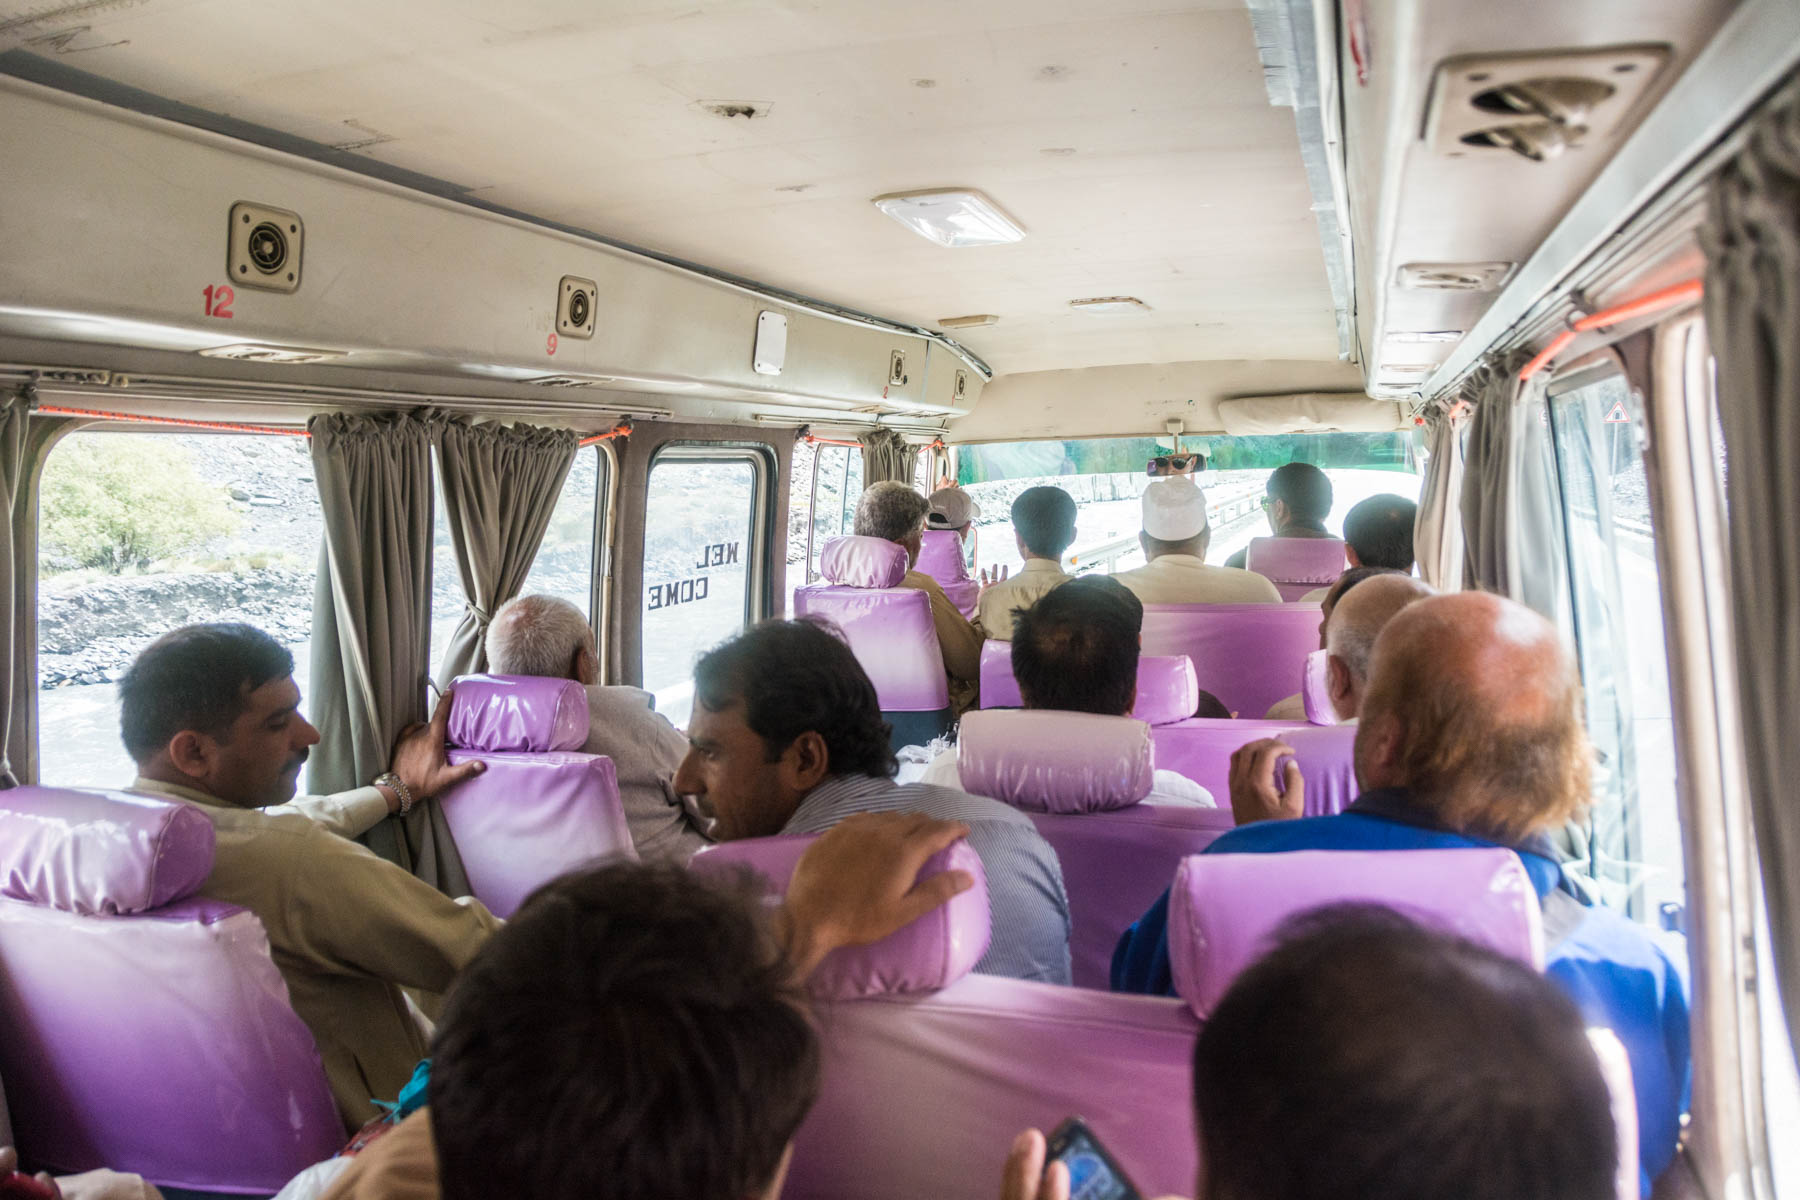 The interior of the NATCO bus from Pakistan to China